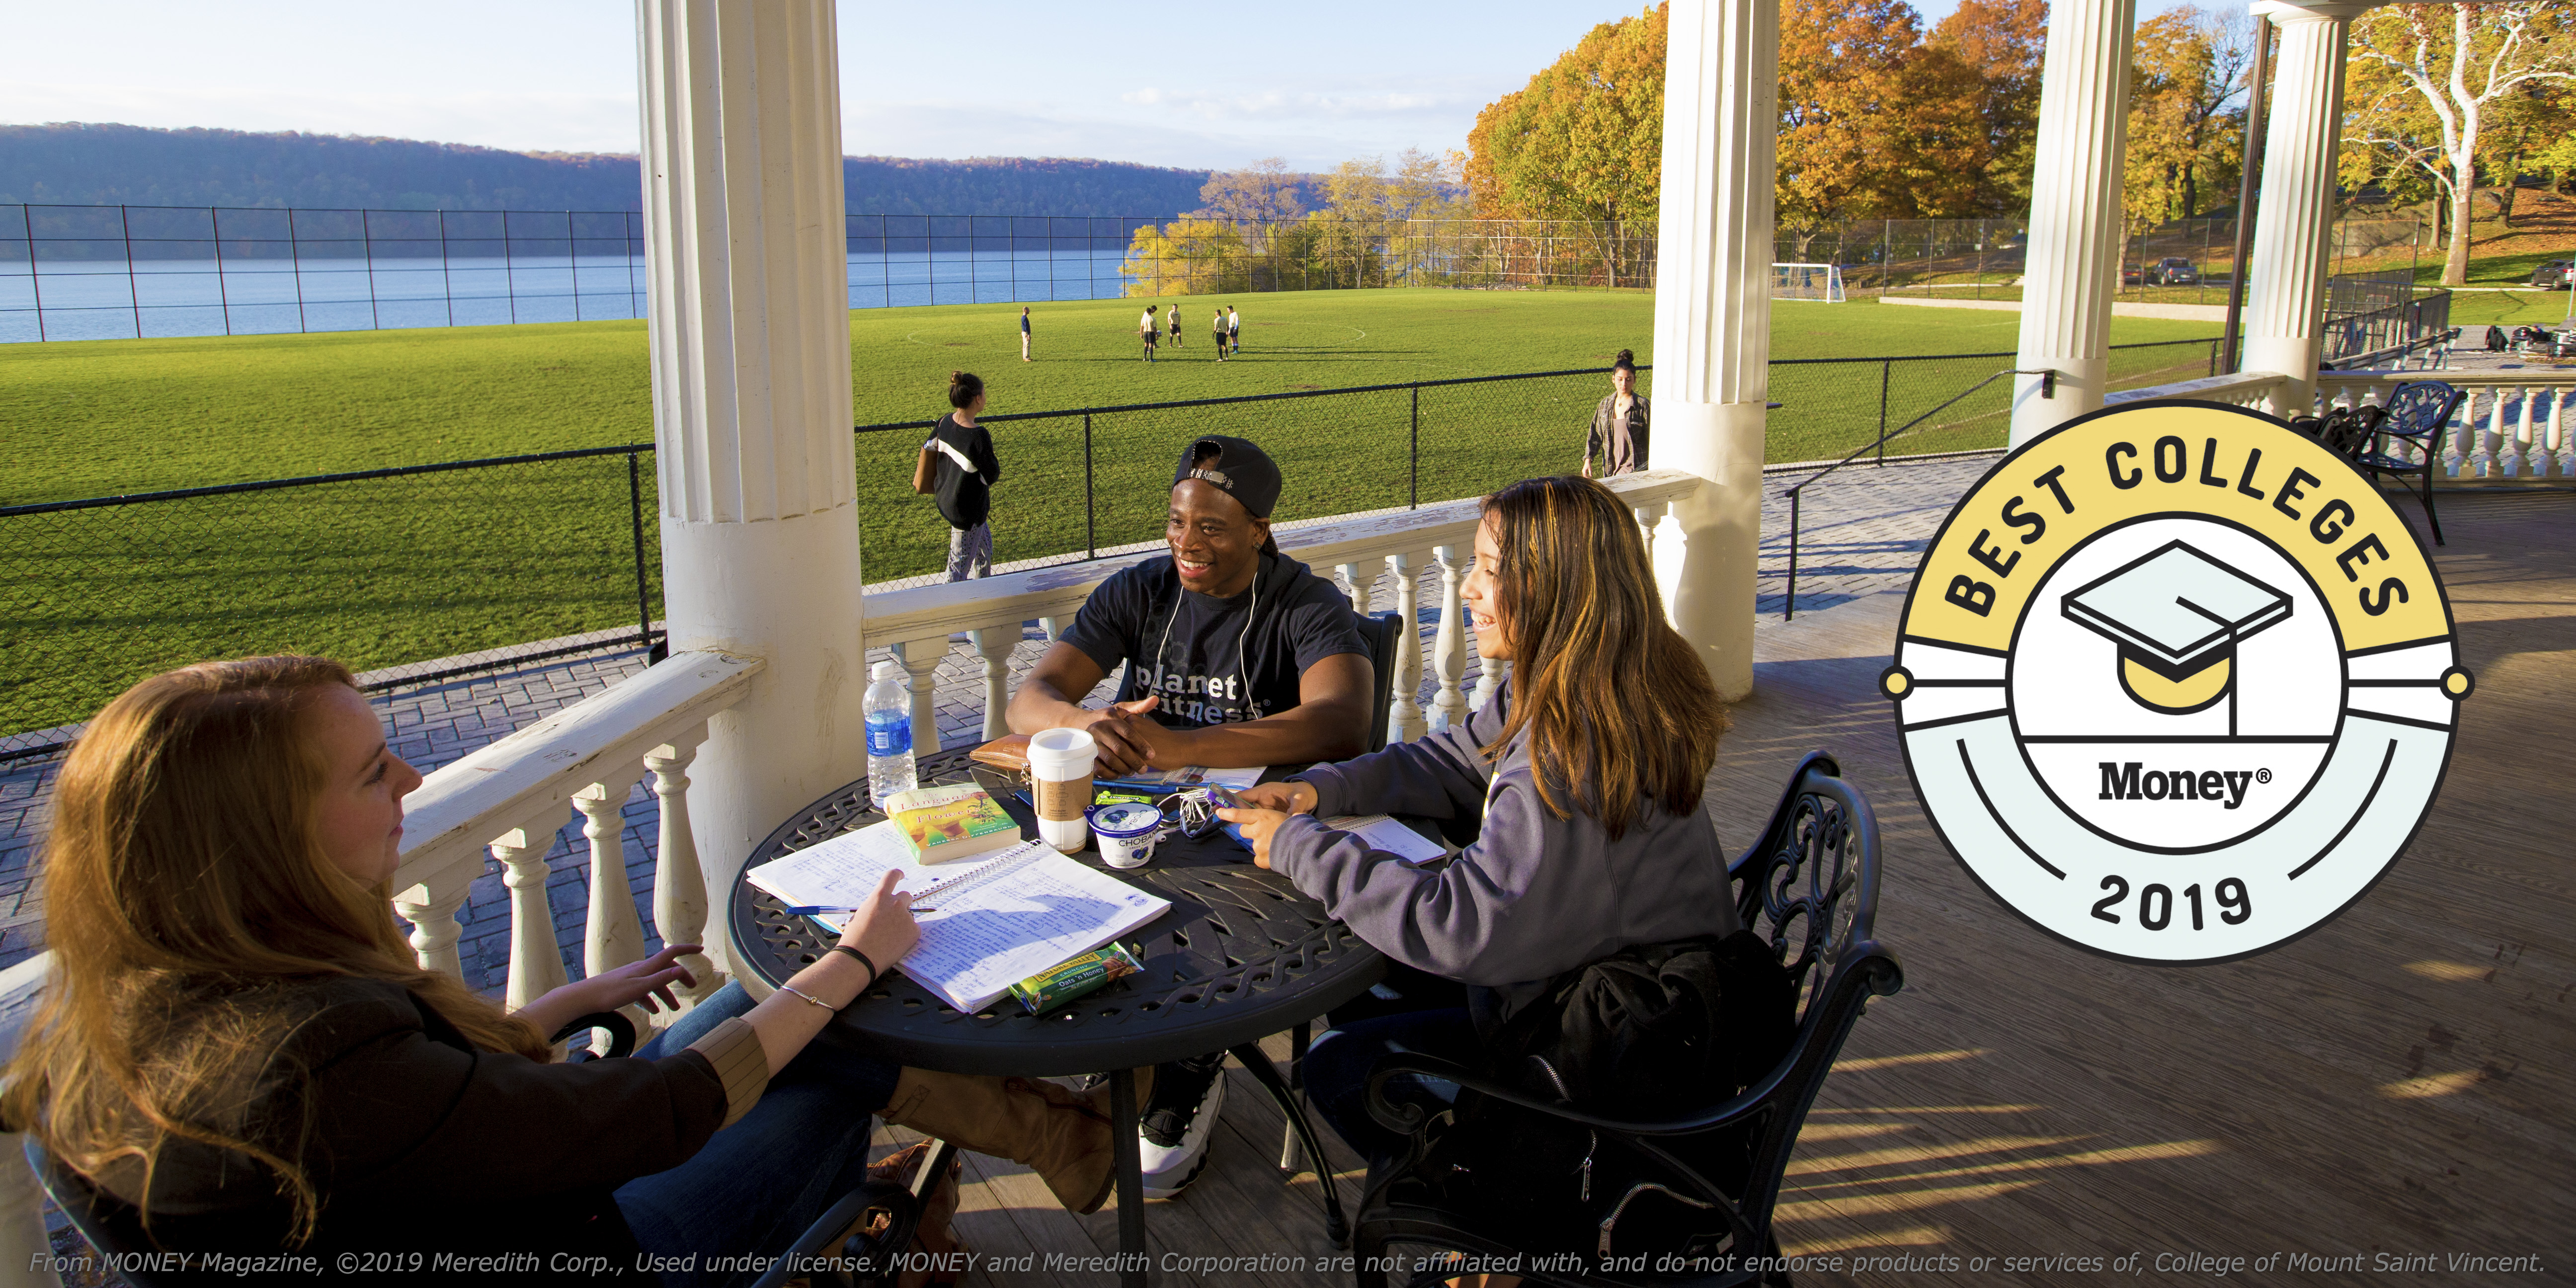 Students smiling and talking on the porch overlooking the field and the Hudson River.